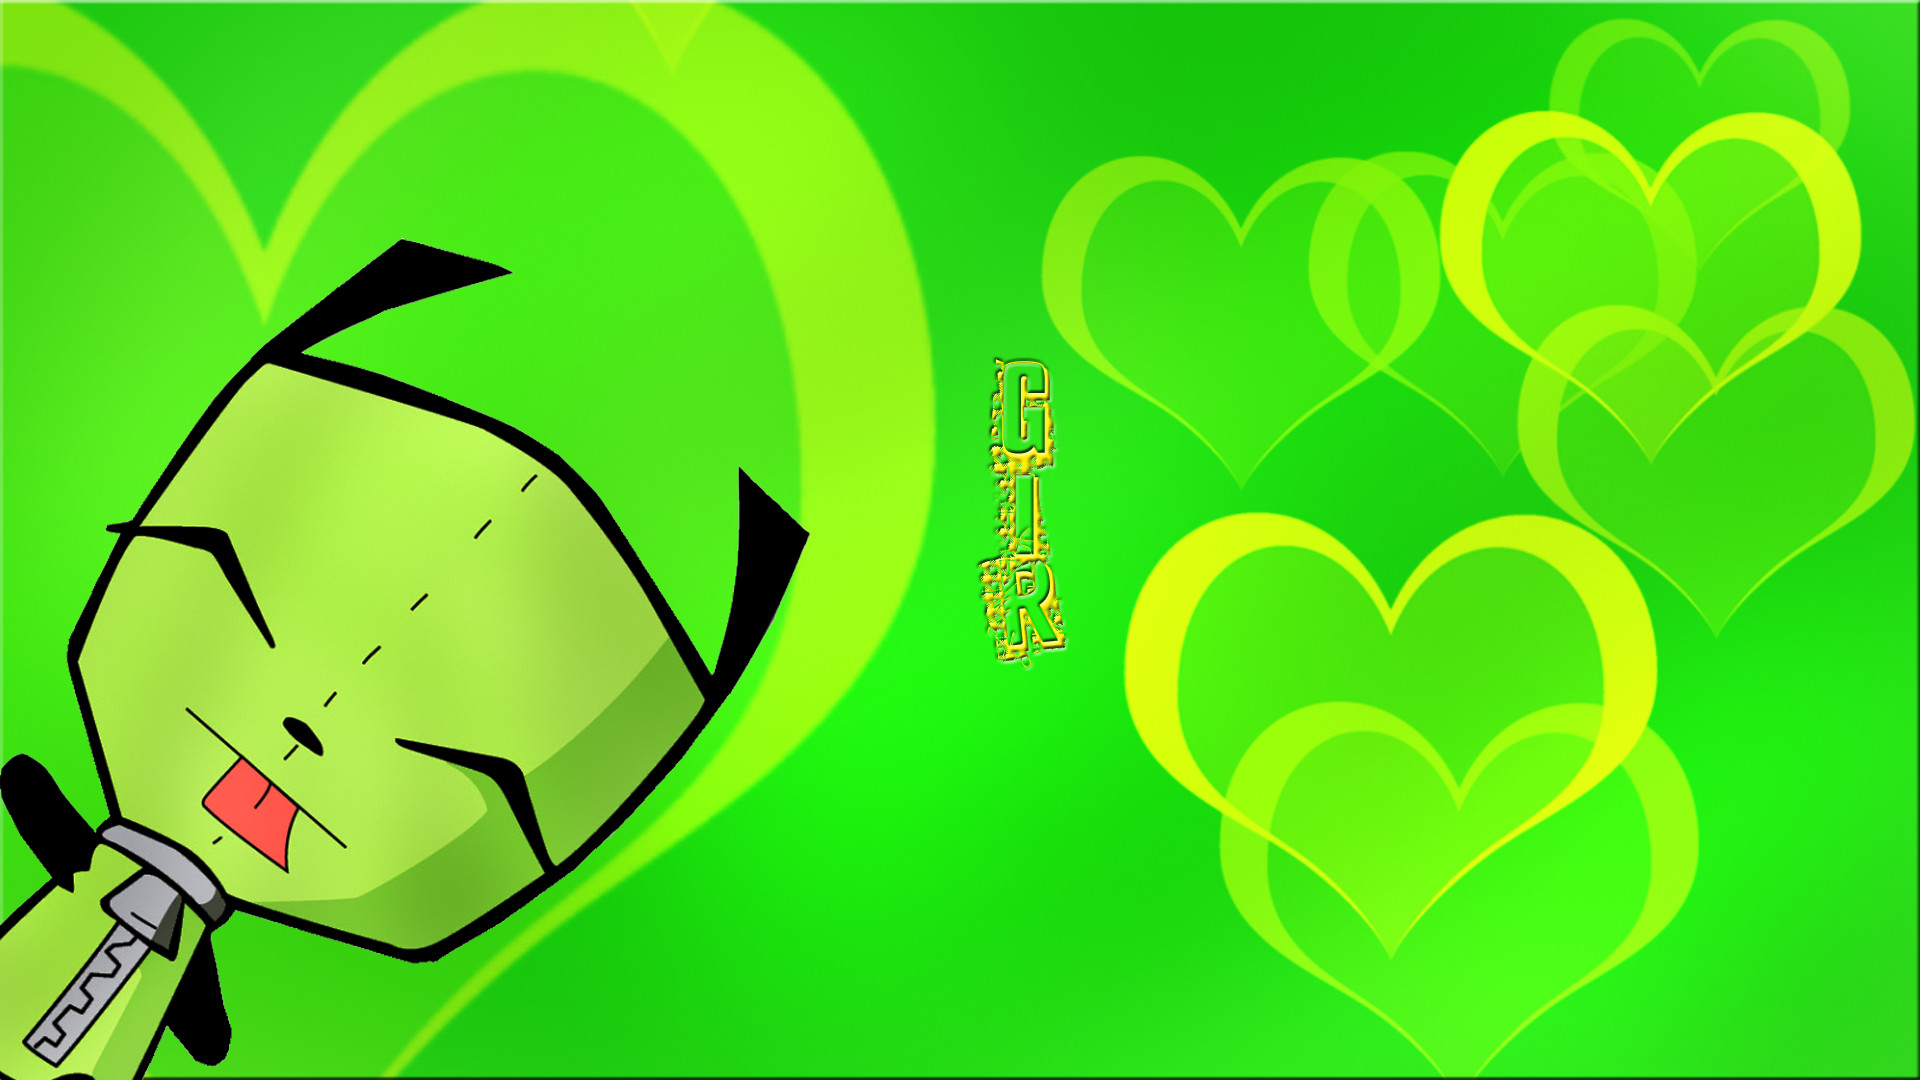 Gir backgrounds 51 images 1920x1080 gir wallpaper by epidemicpandmonia gir wallpaper by epidemicpandmonia voltagebd Choice Image